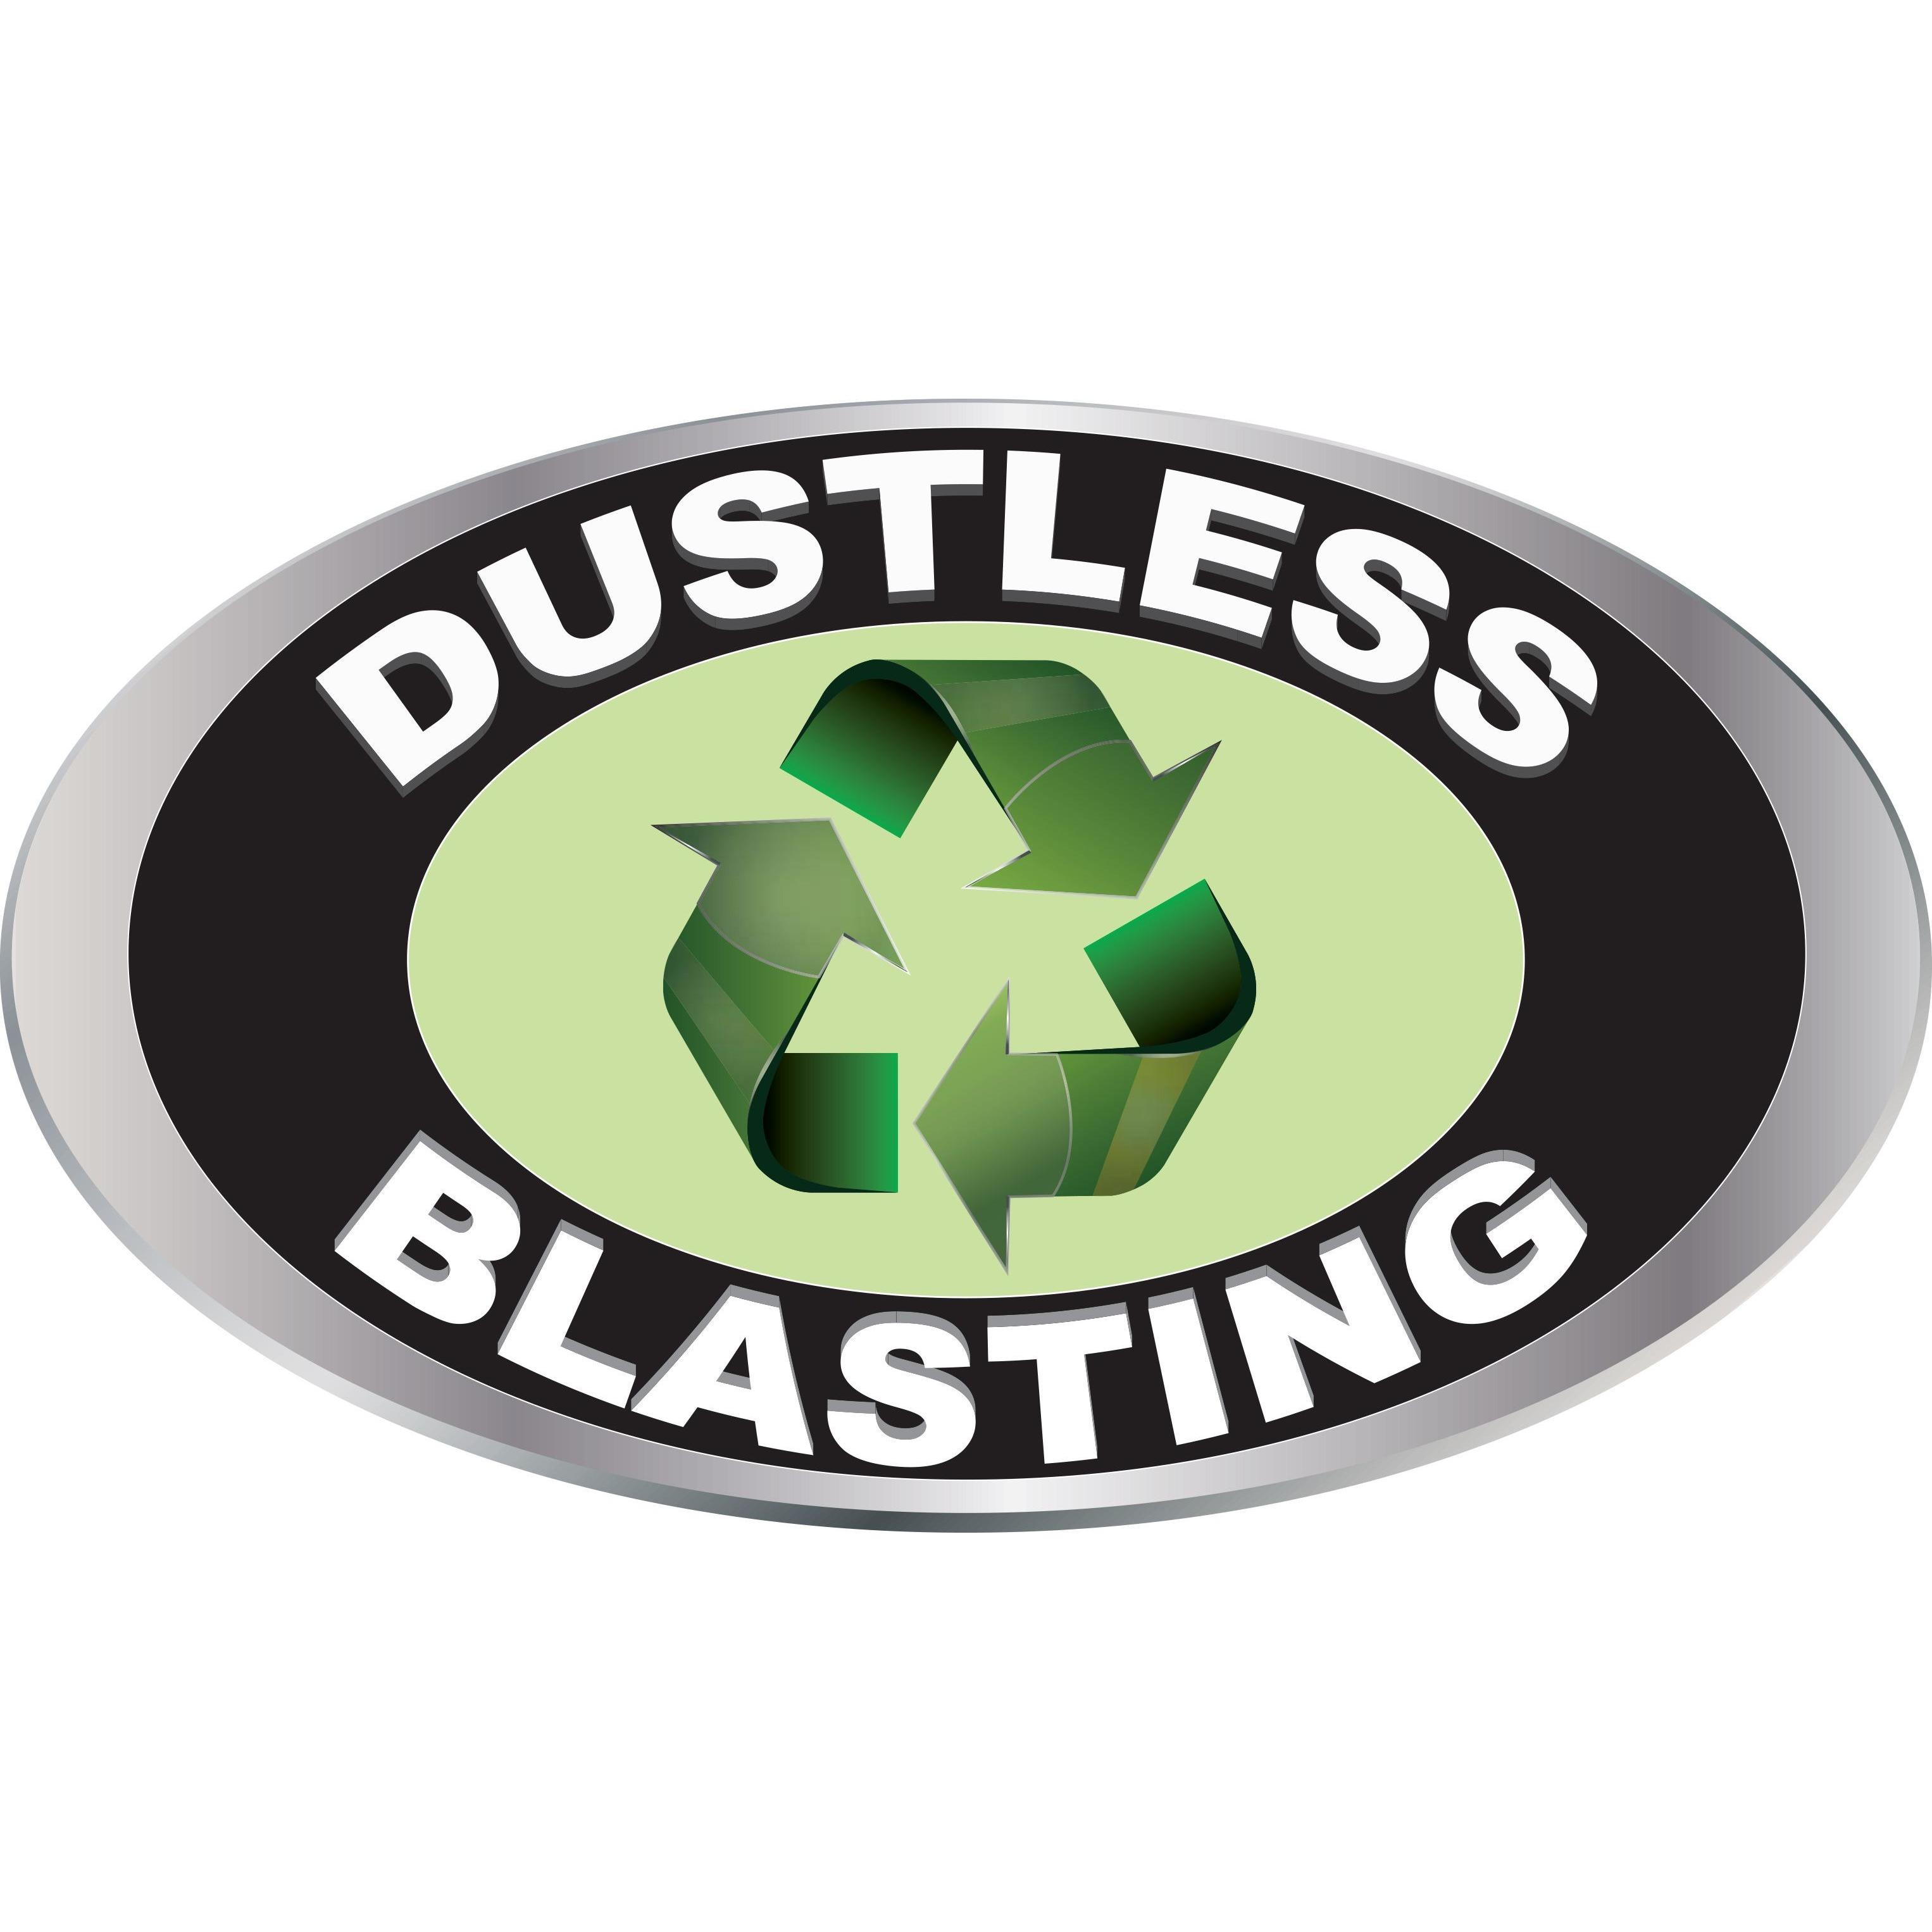 J Amp M Dustless Blasting Inc Ooltewah Tennessee Tn